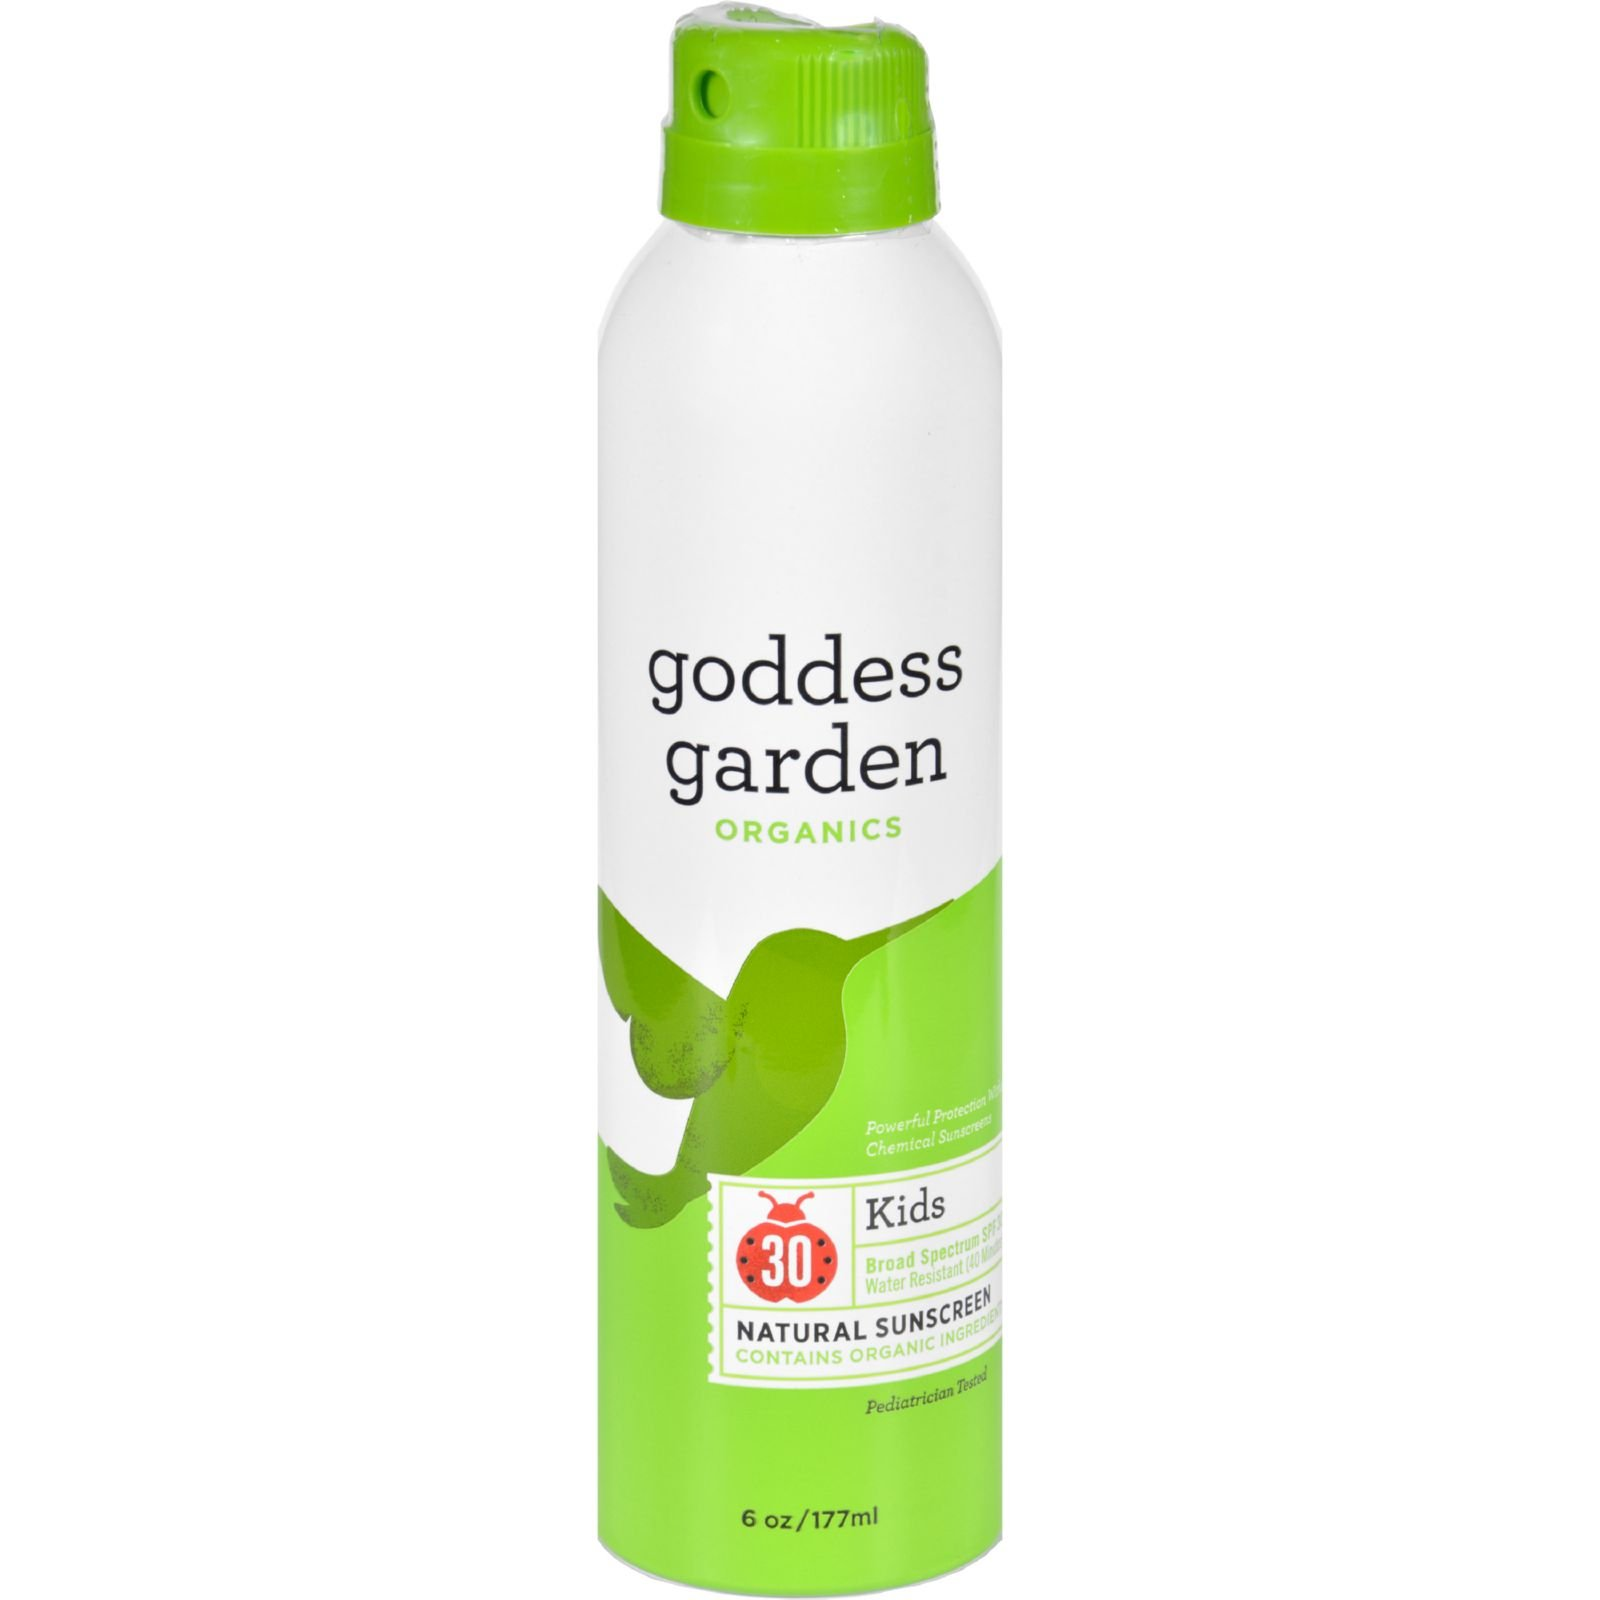 Goddess Garden Sunny Kids Natural Sunscreen Spf 30 Continuous Spray - 6 oz (pack of 6) image may vary